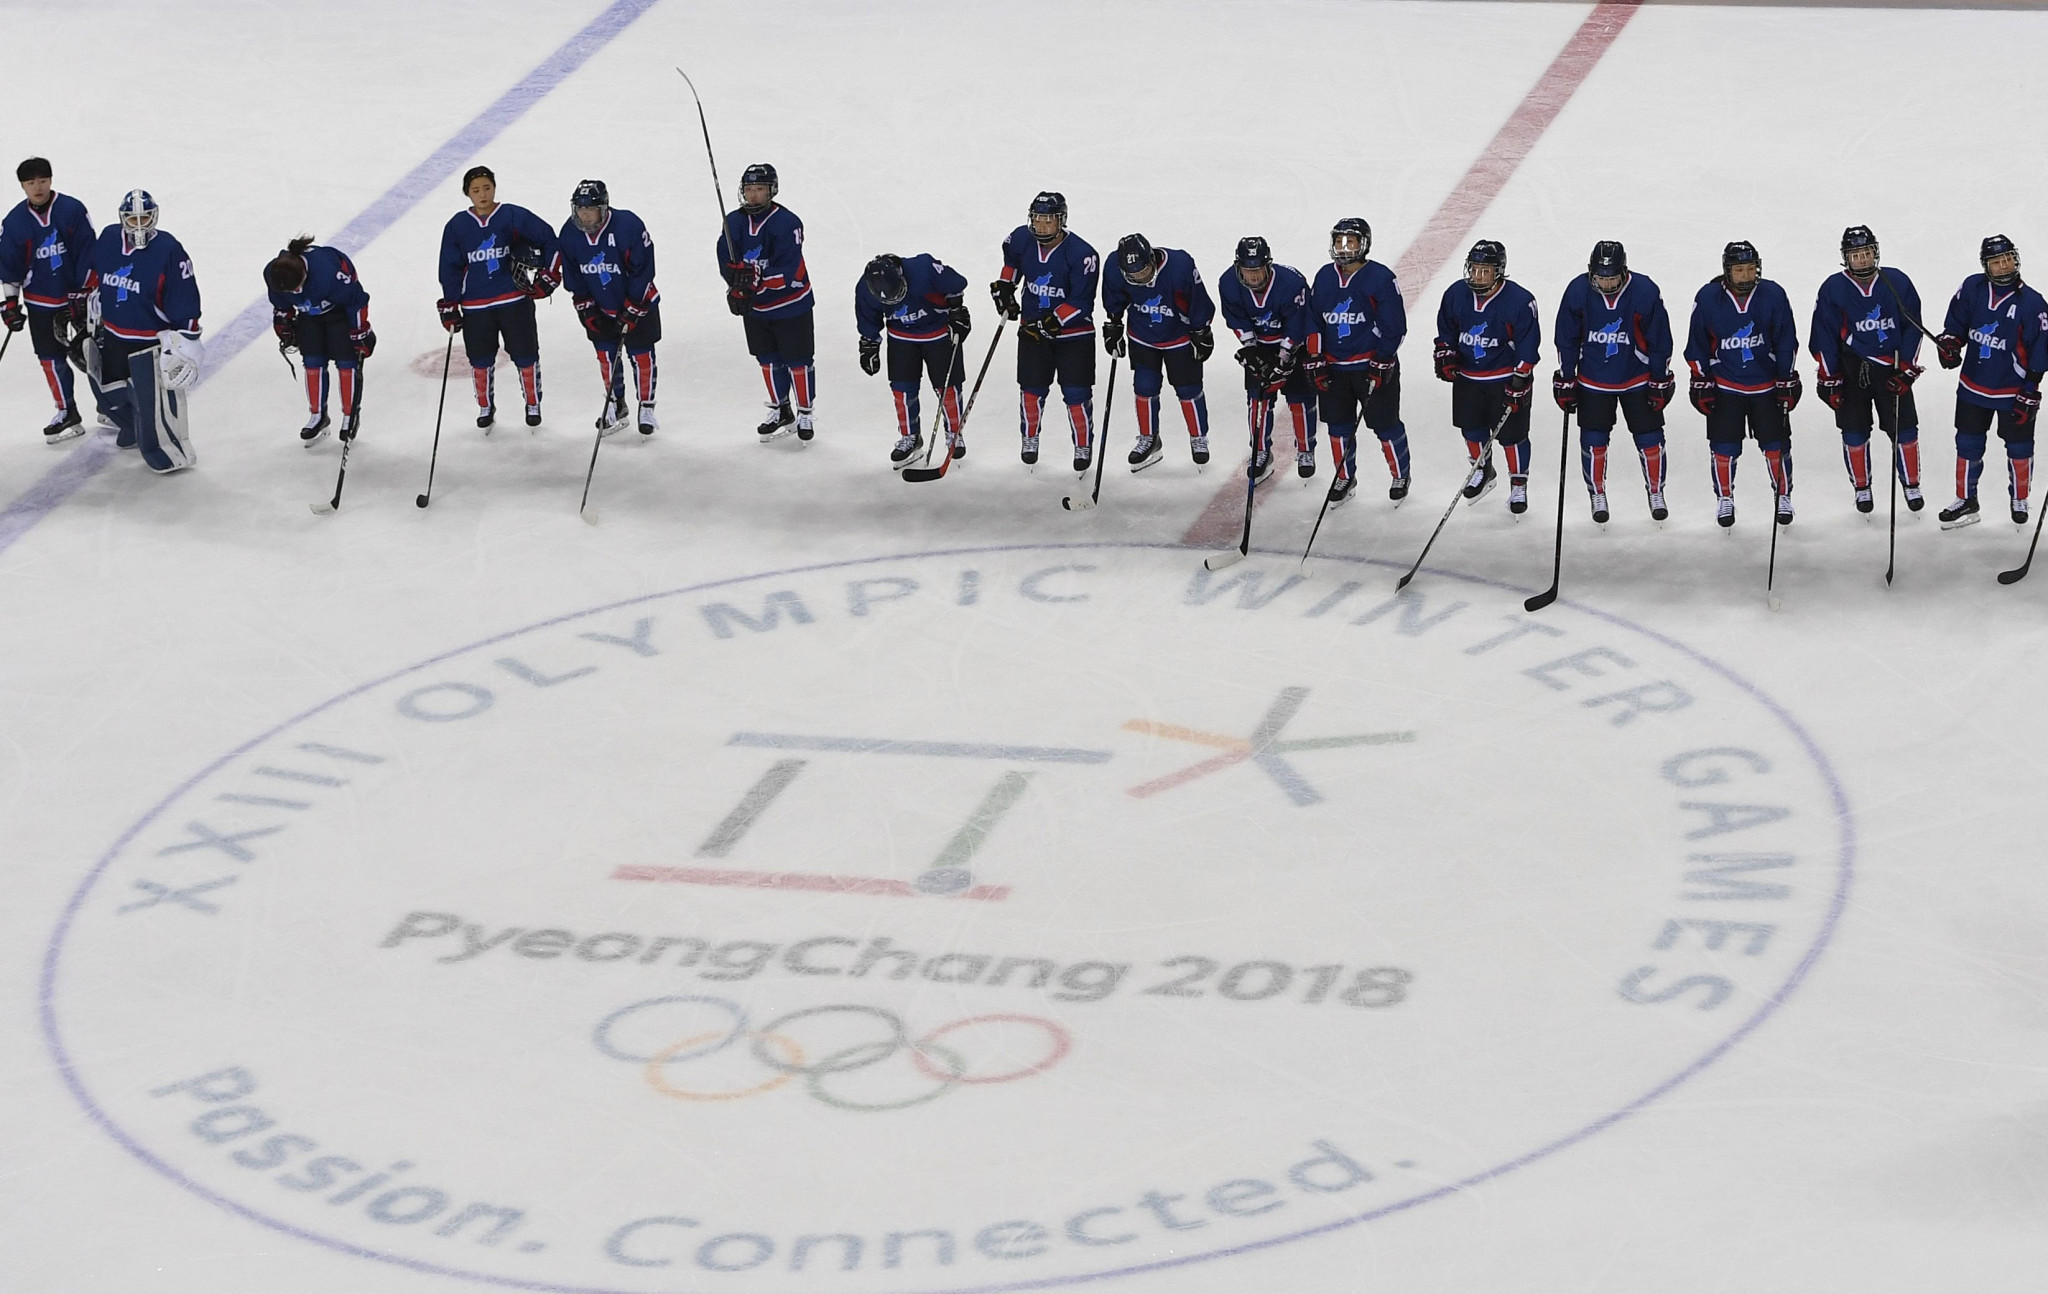 The united Korean women's ice hockey team that competed at Pyeongchang 2018 was a sign of the thawing of relations between the North and South, it has been claimed ©Getty Images